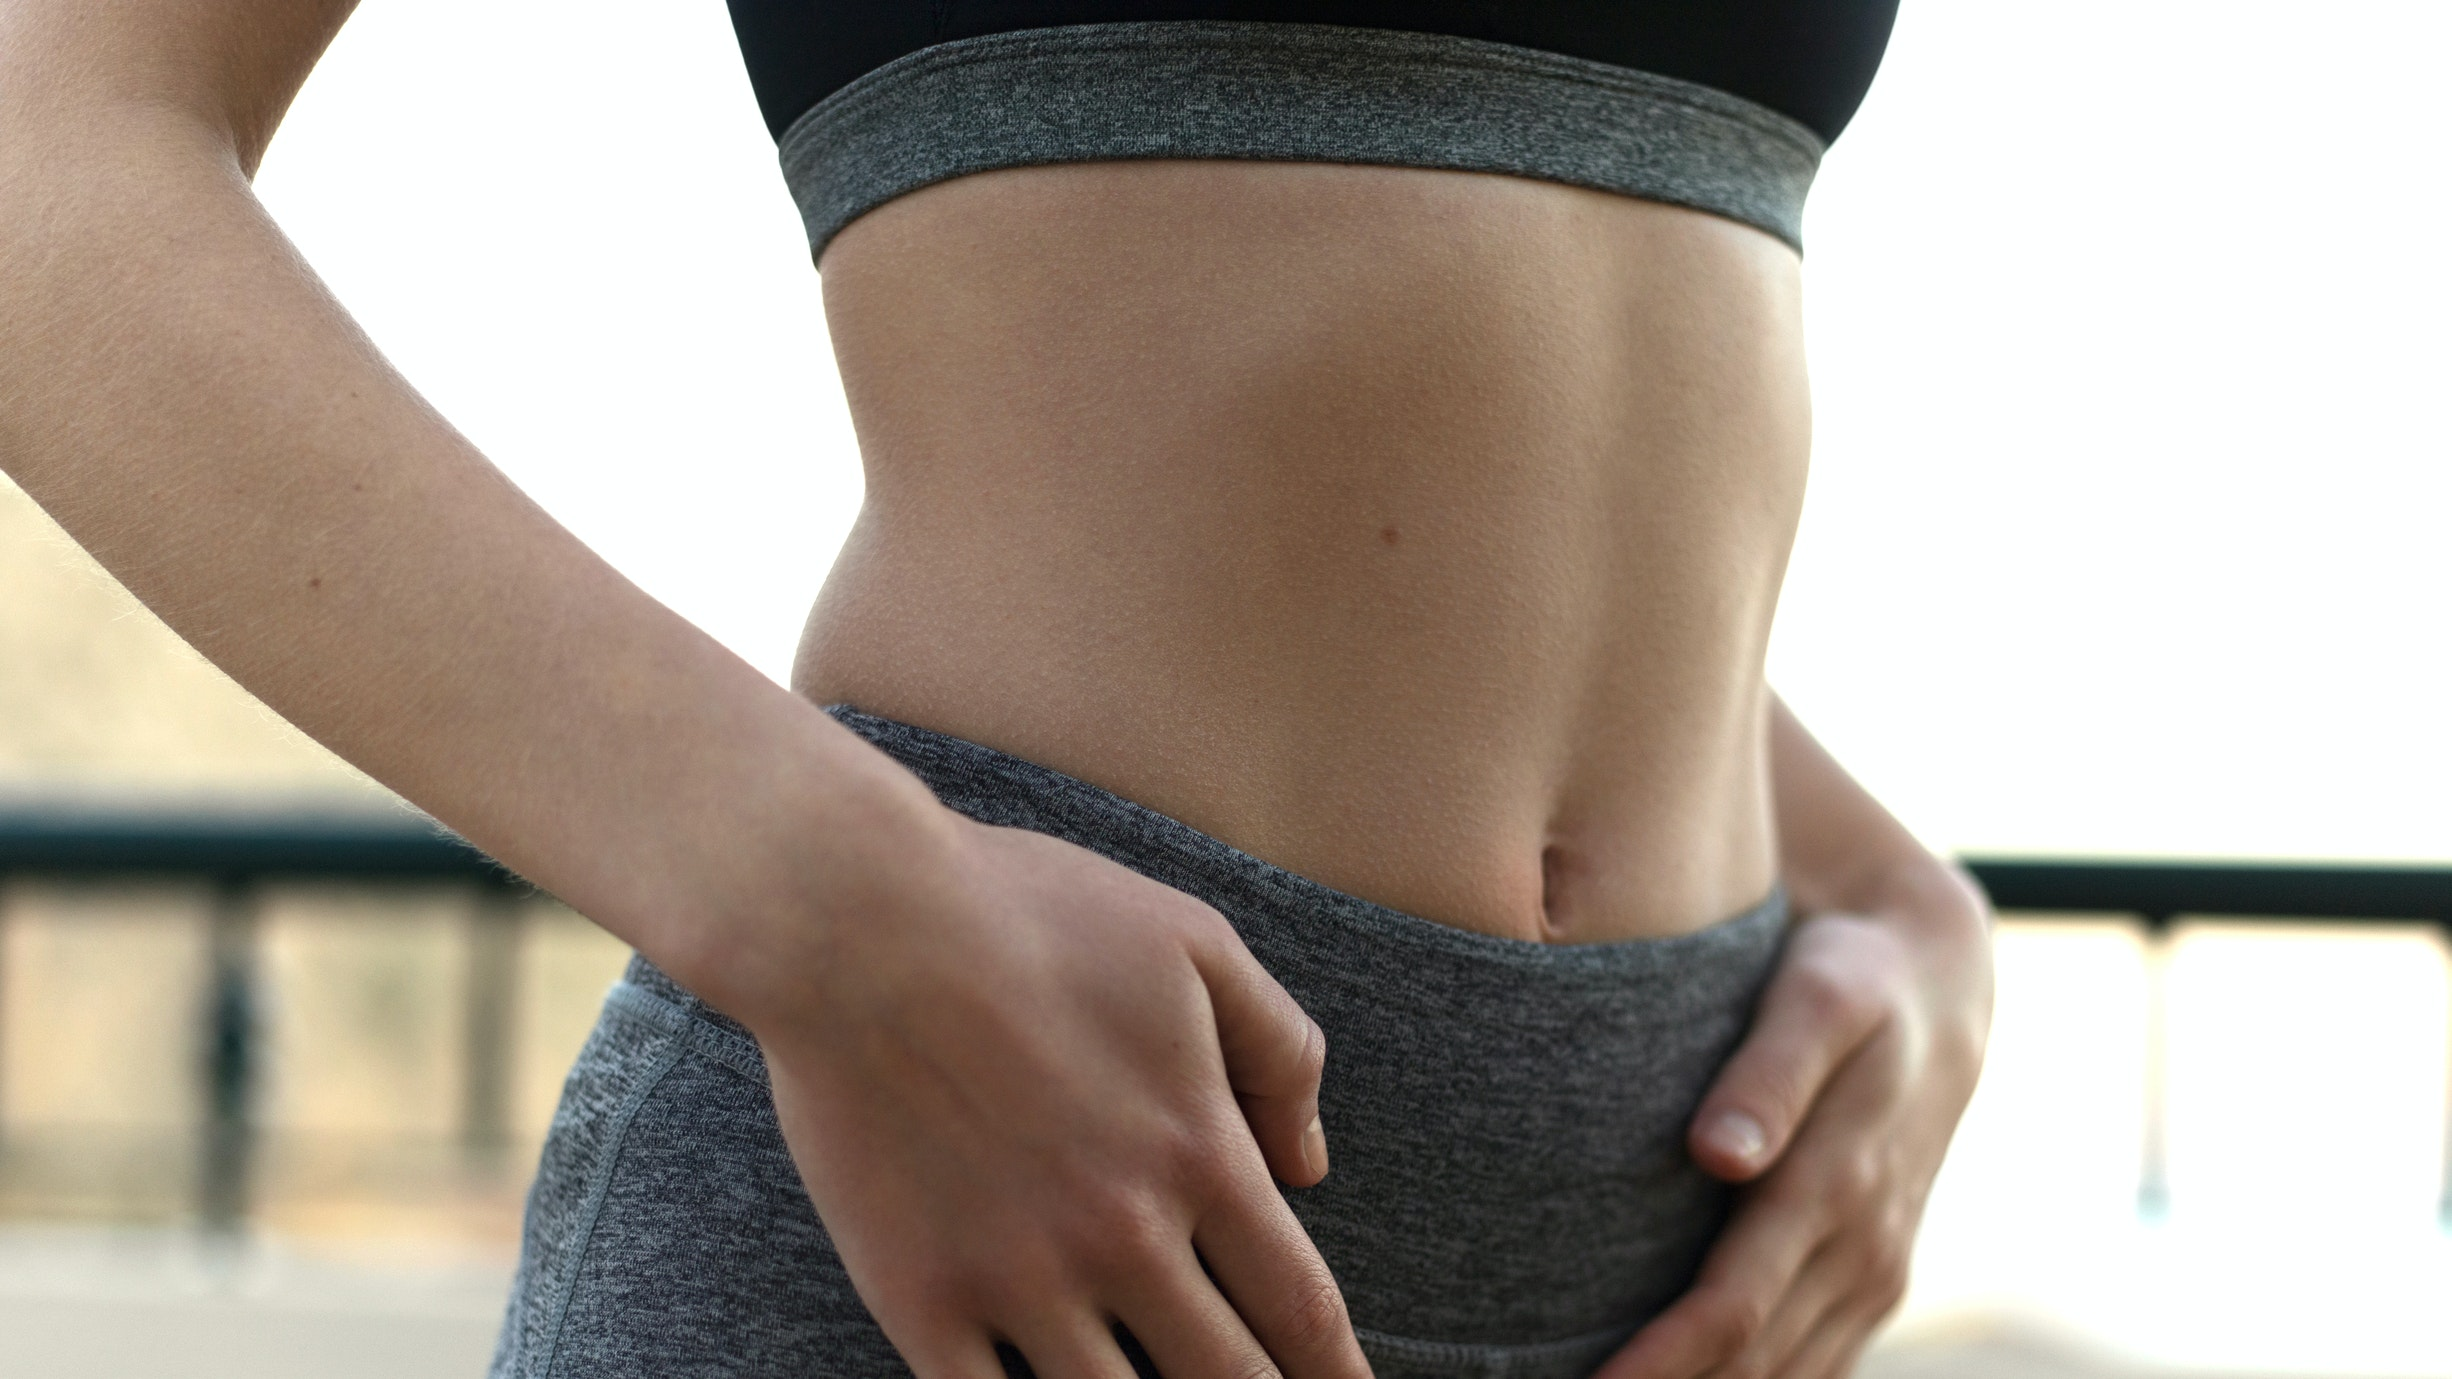 Woman's midsection